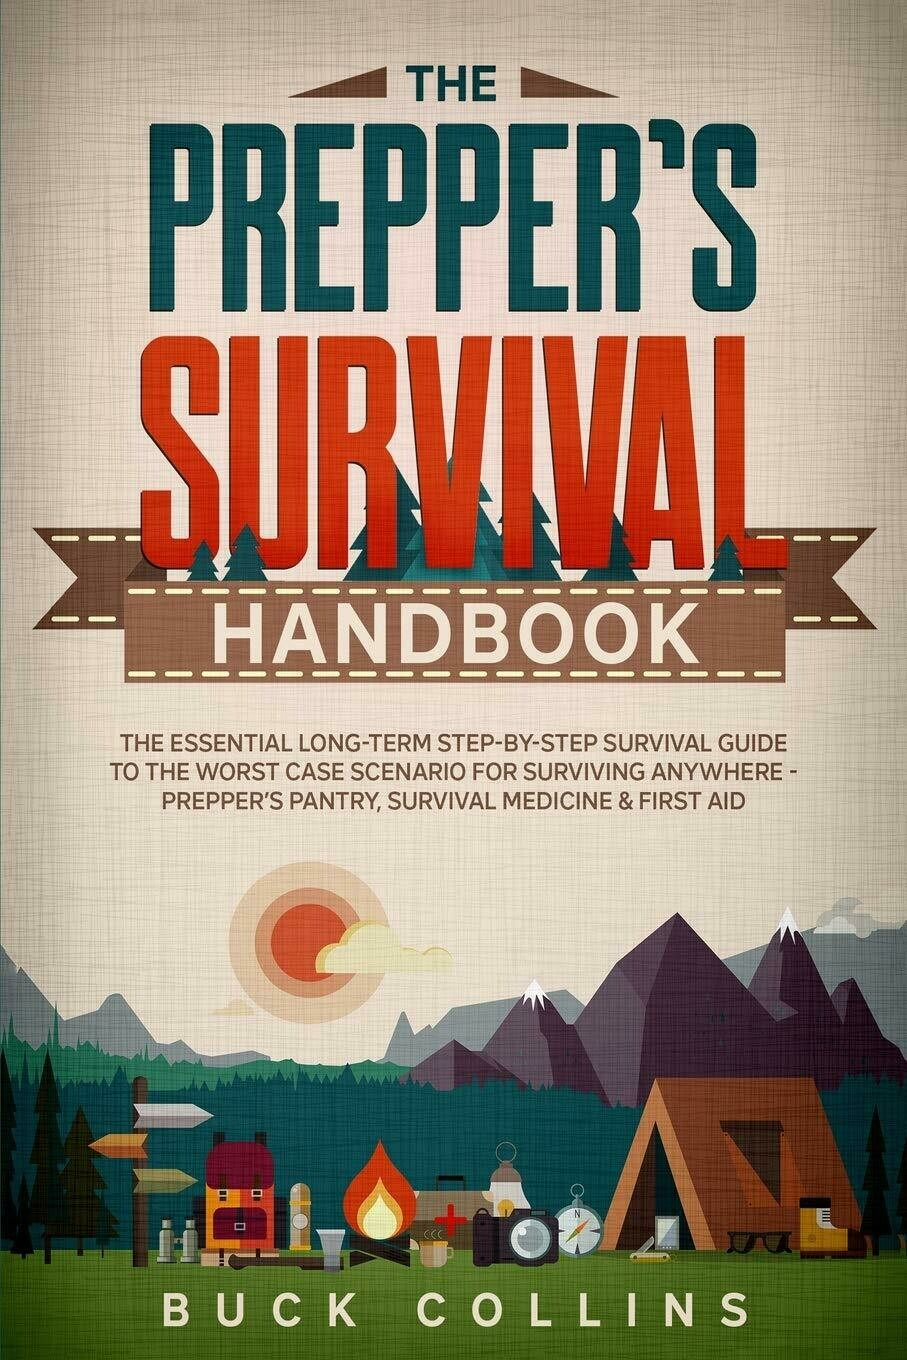 The Preppers Survival Handbook: The Essential Long Term Step-By-Step Survival Guide to the Worst Case Scenario for Surviving Anywhere - Prepper's Pantry, Survival Medicine & First Aid Paperback – Apri